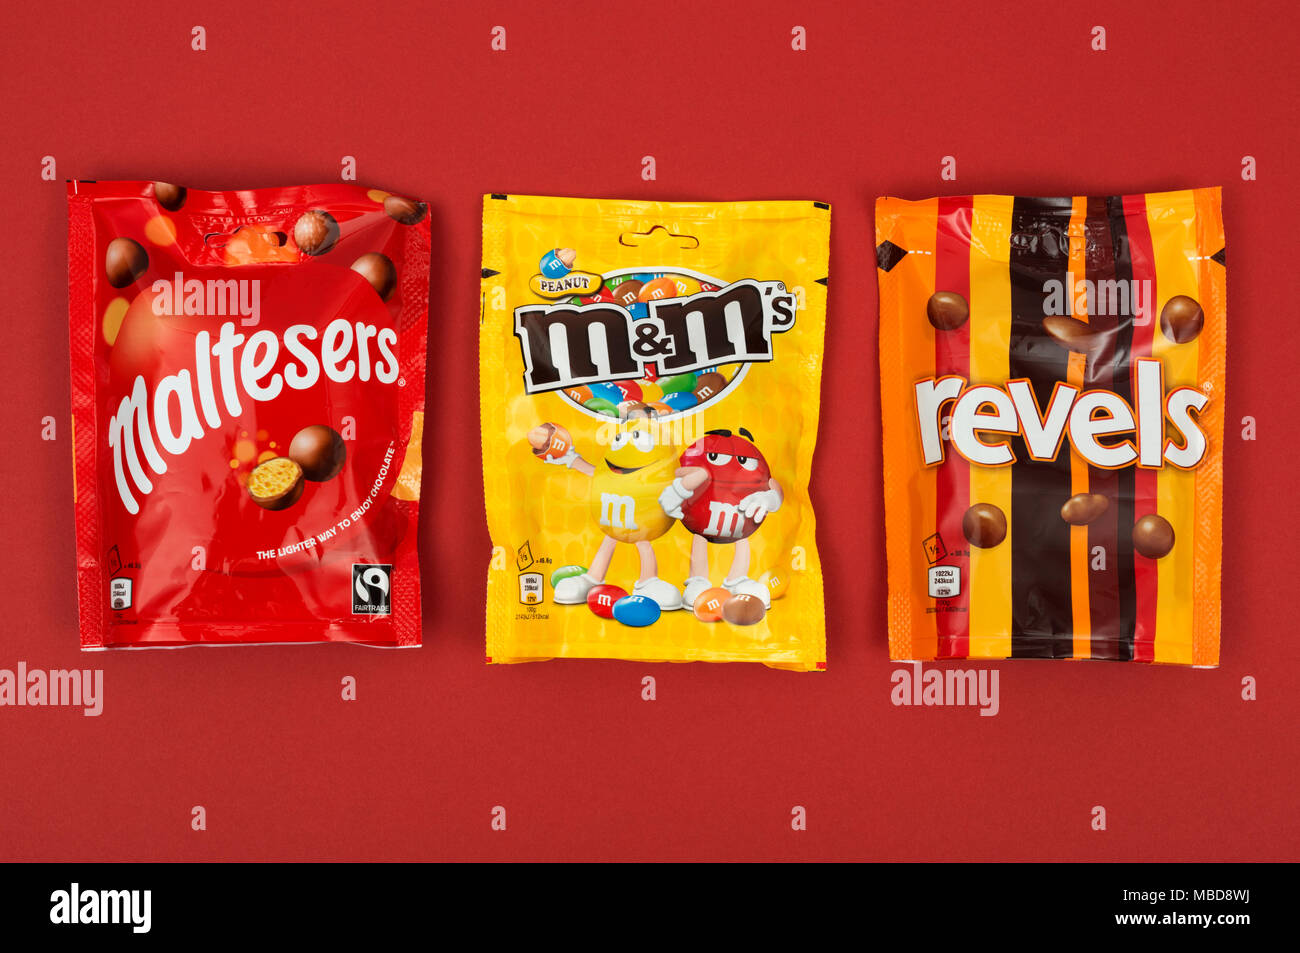 Maltesers M&M and Revels - Stock Image